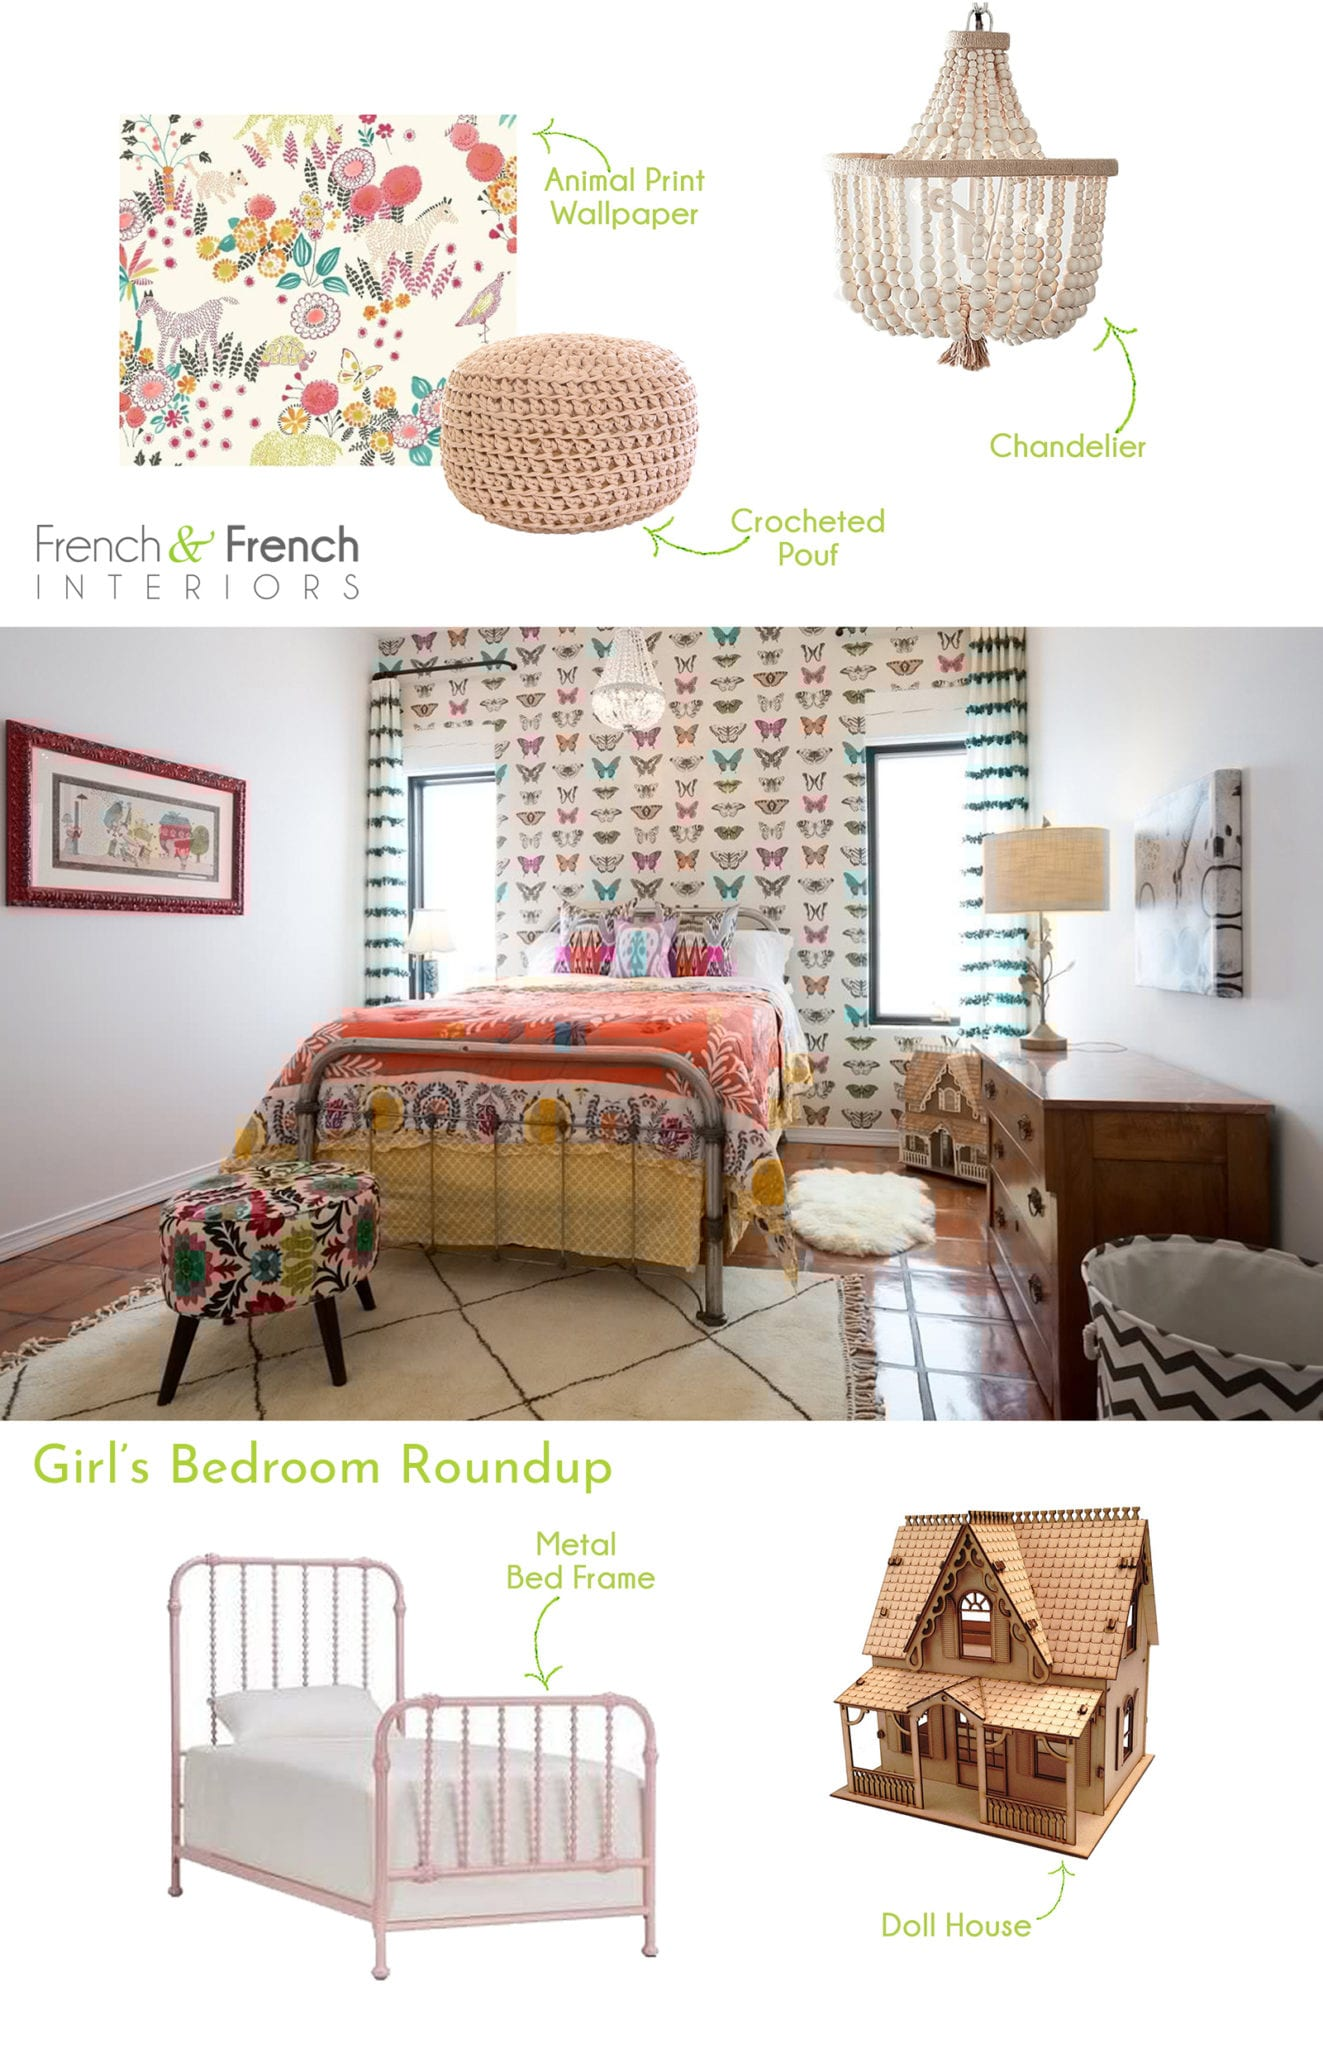 inspiration for designing your kid's room butterfly wallpaper animal print wallpaper chandelier crocheted pouf metal bed frame doll house